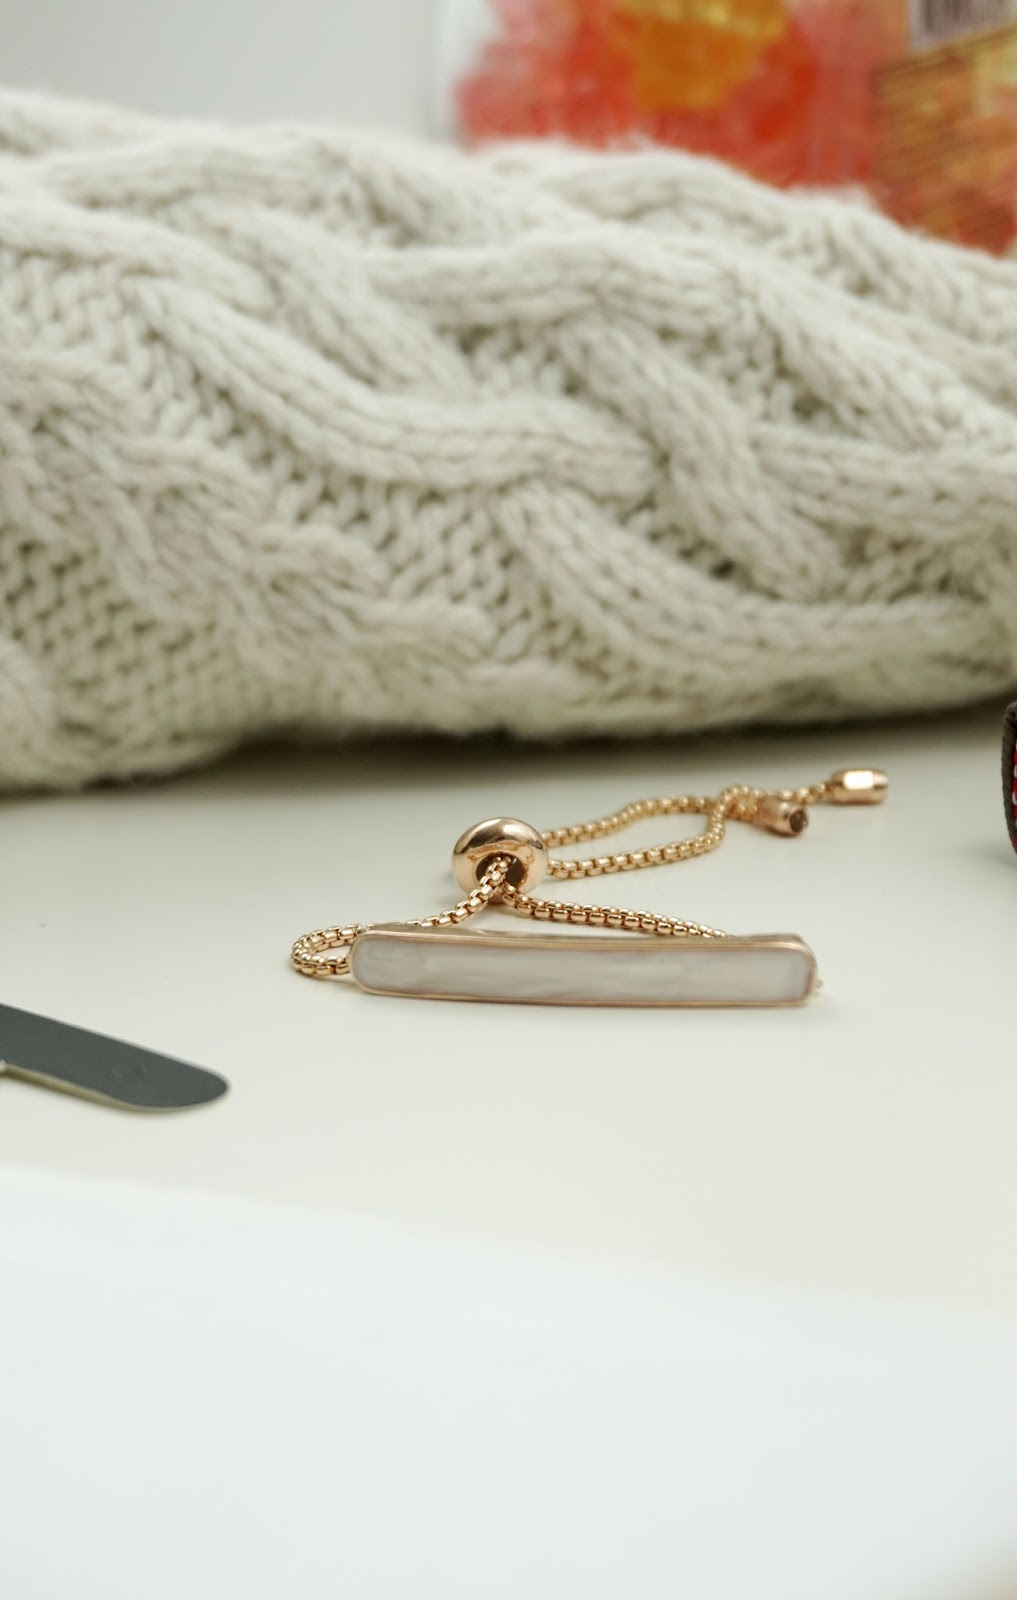 valentines day gift guide her girlfriend kiehls chanel perfume monica vinader stacking ring rose gold knit jumper love prosecco